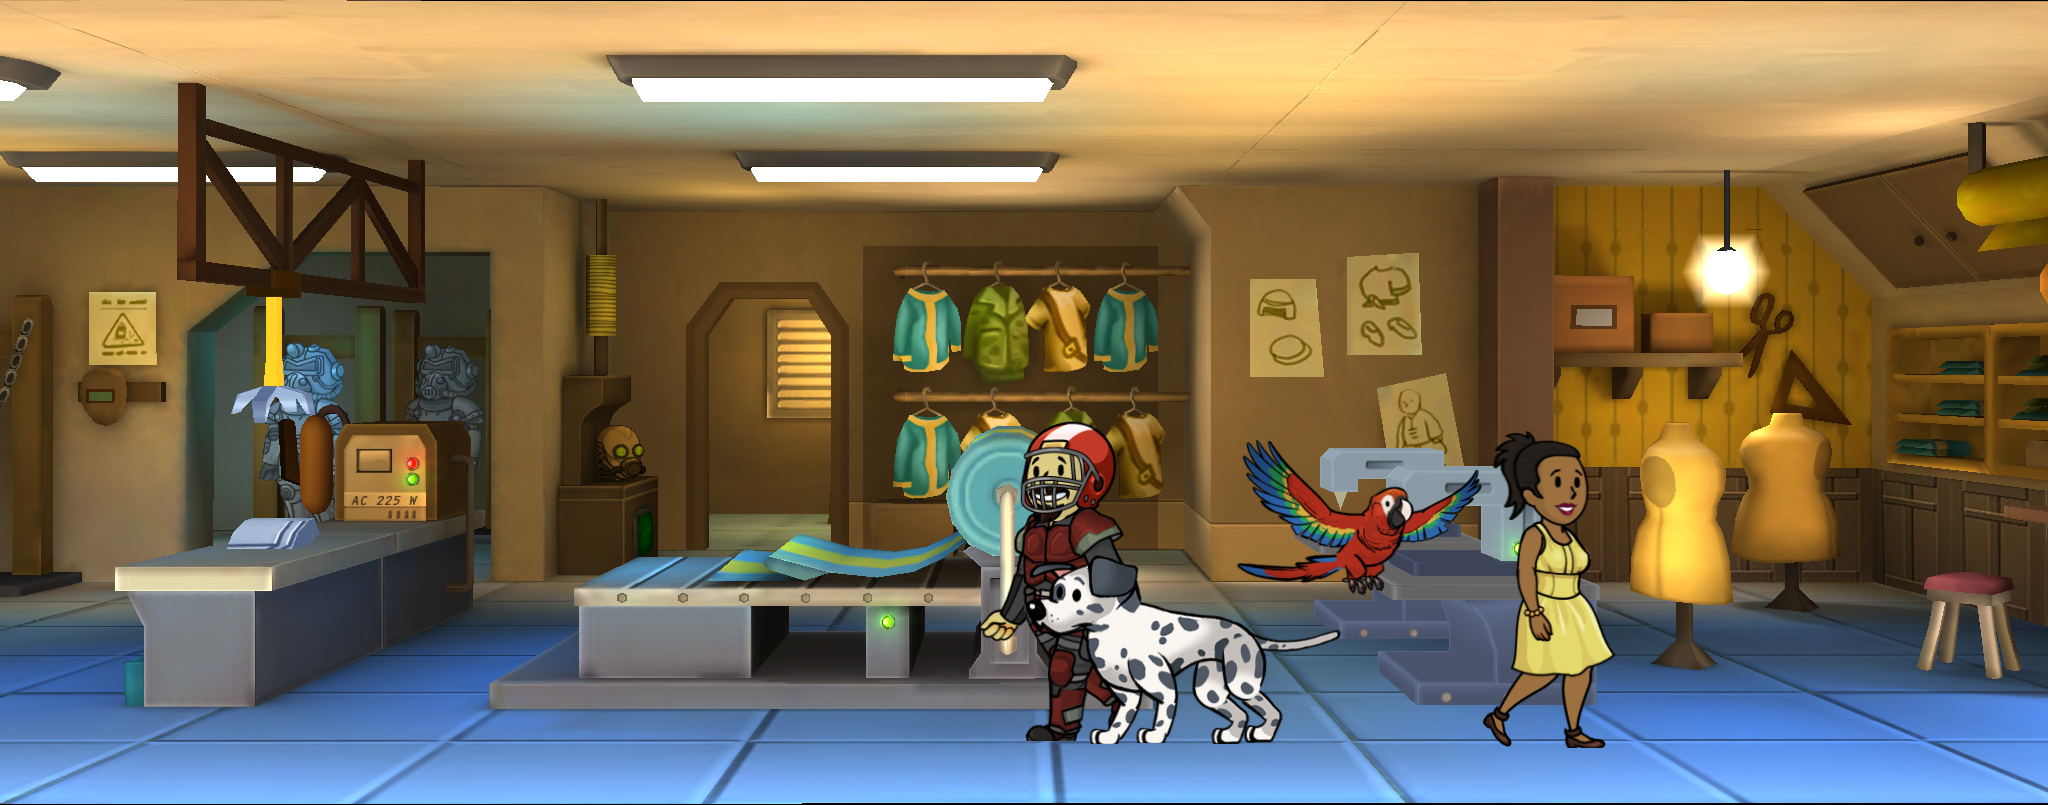 Upcoming Fallout Shelter Update Detailed